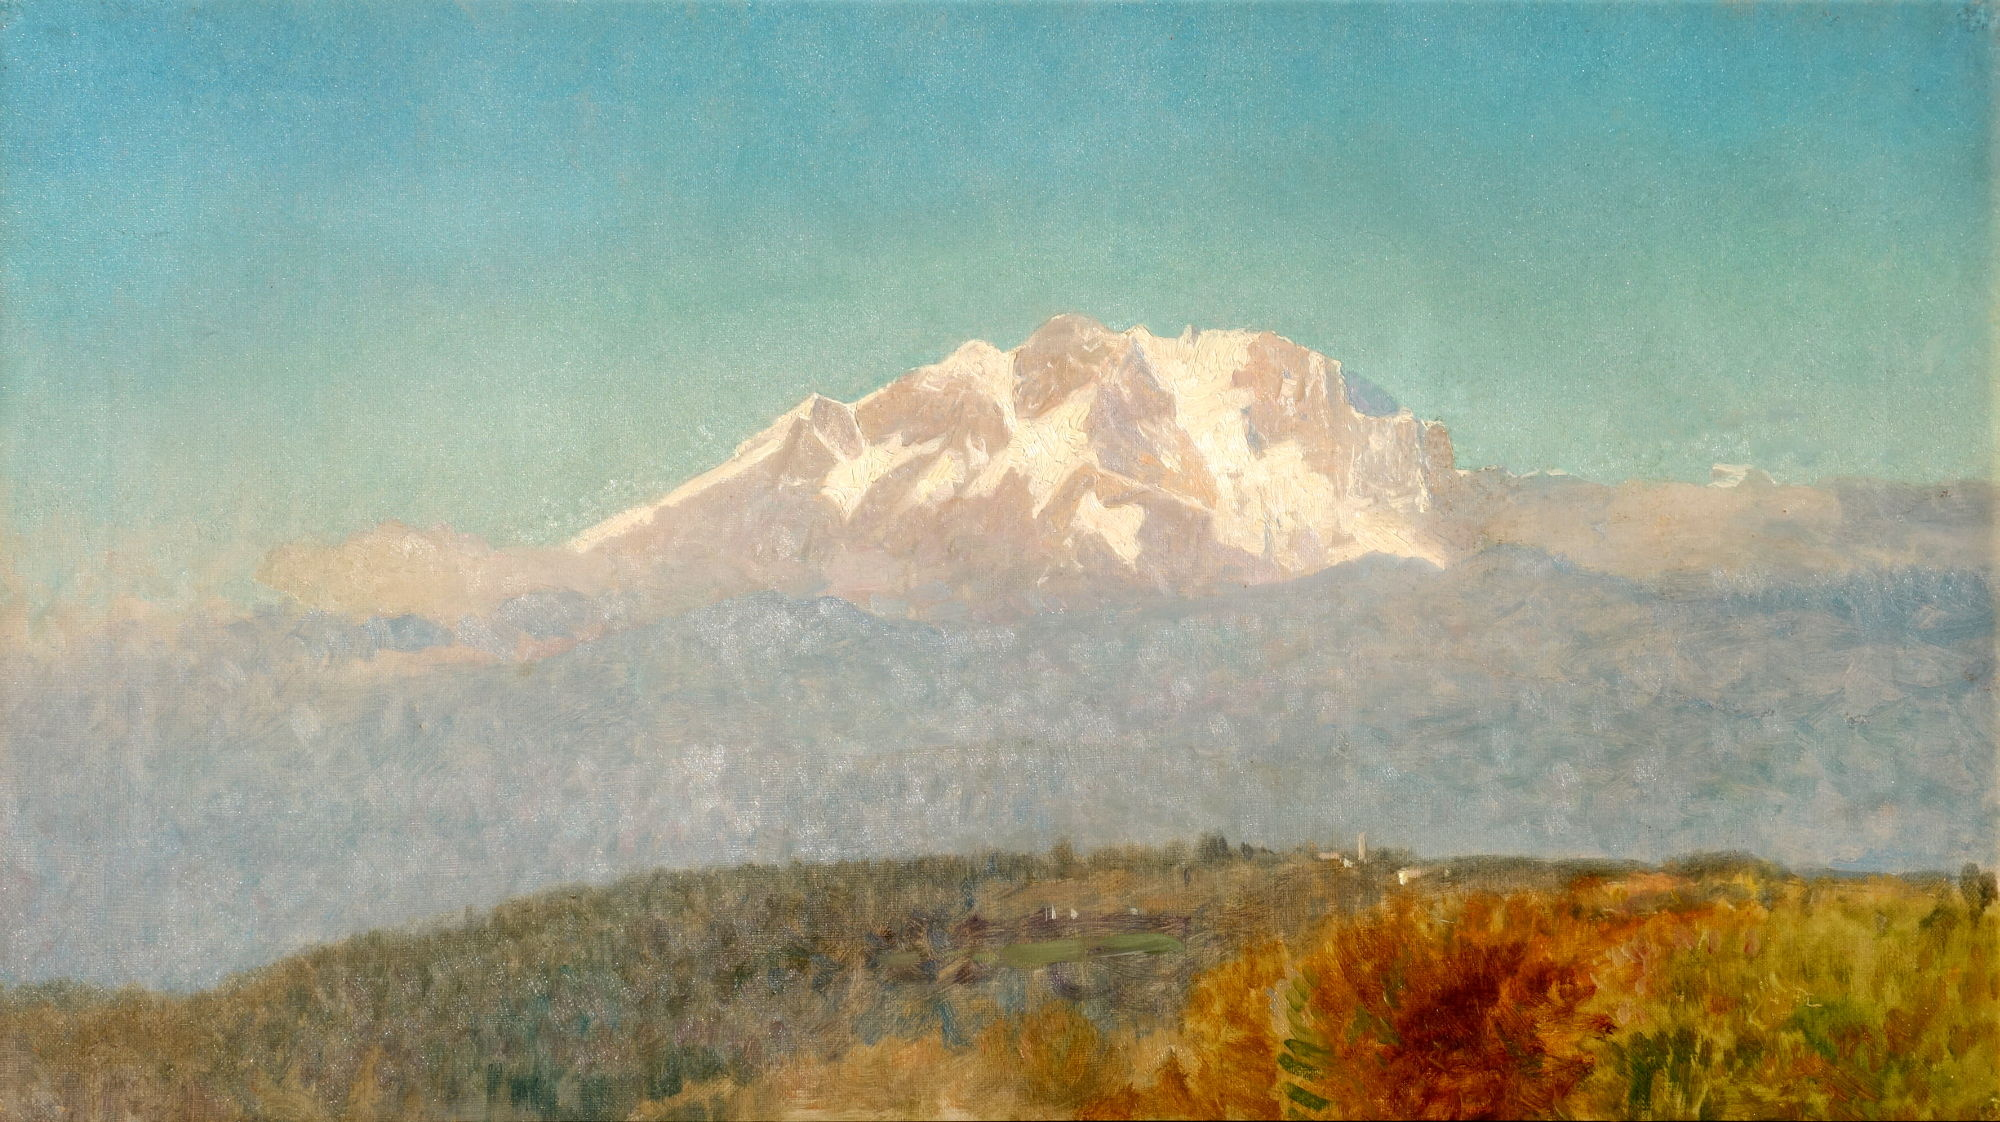 William Stanley Haseltine: Pilatus, ca. 1880, Öl auf Leinwand, 35 x 63 cm, Privatbesitz(c) Joe Amberg